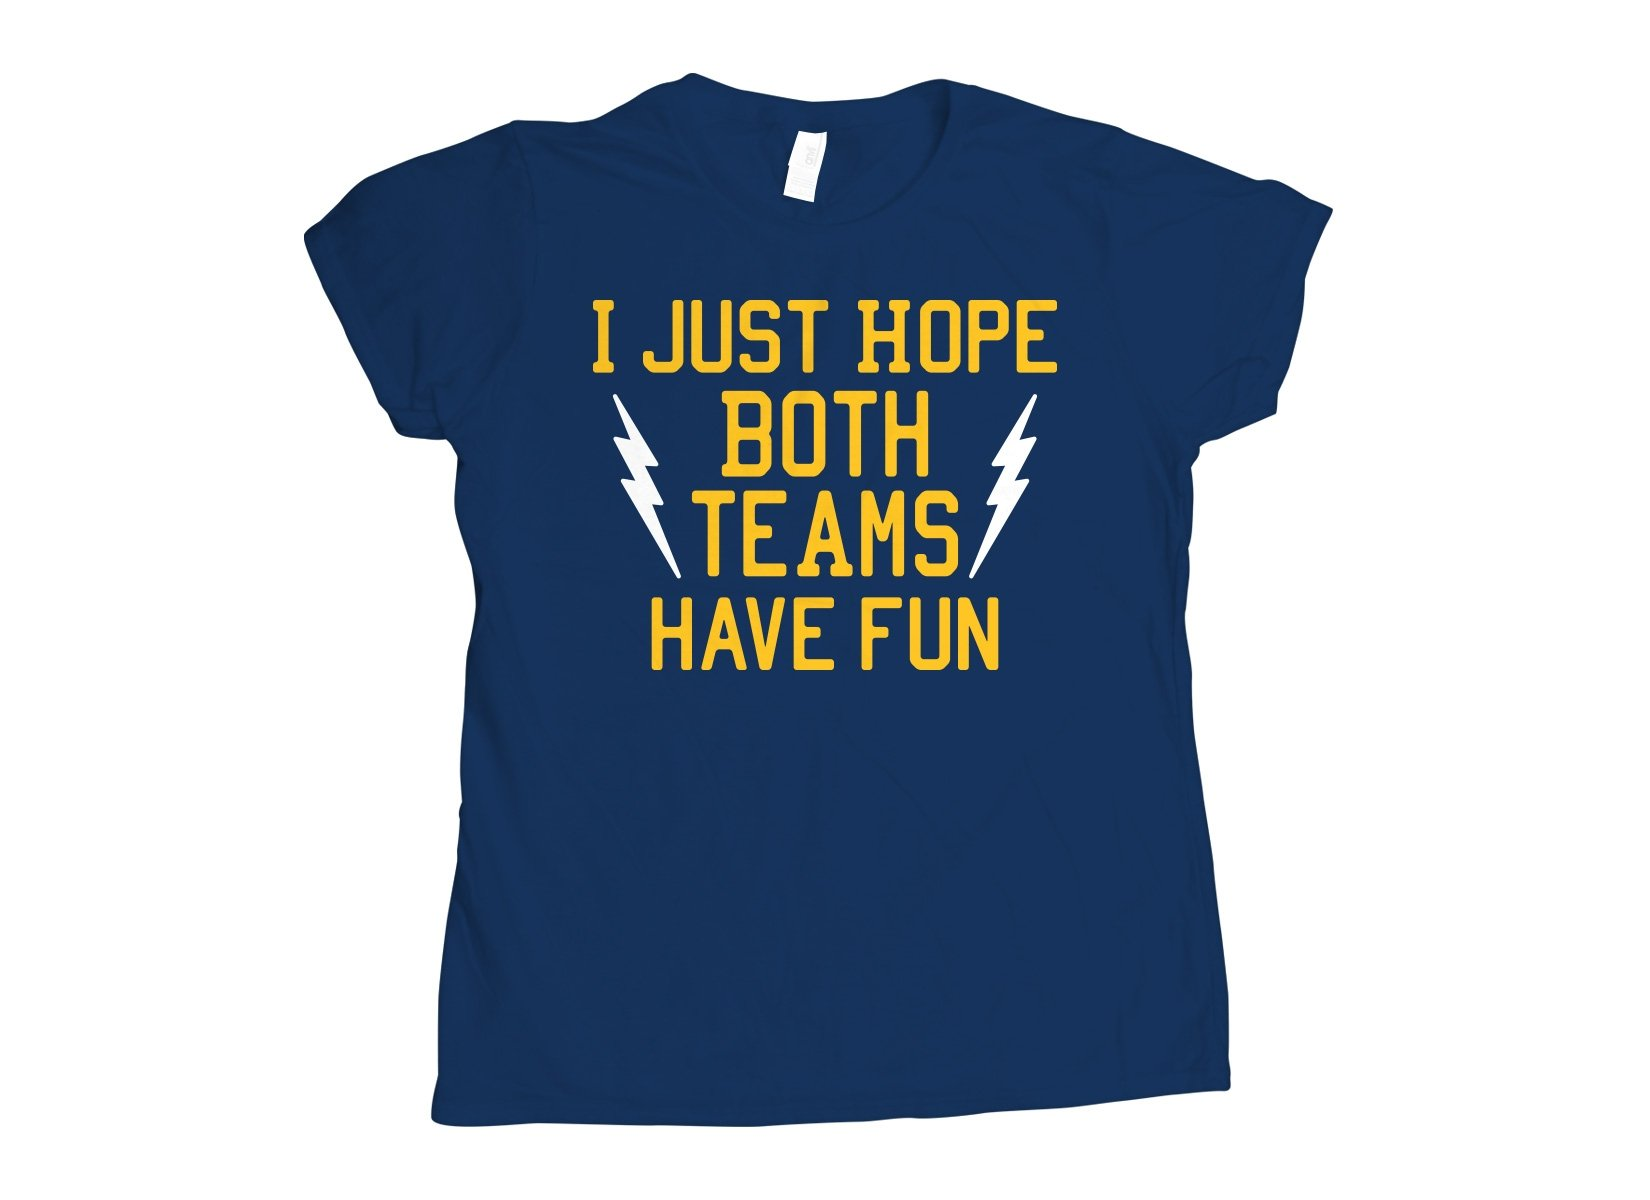 I Just Hope Both Teams Have Fun on Womens T-Shirt